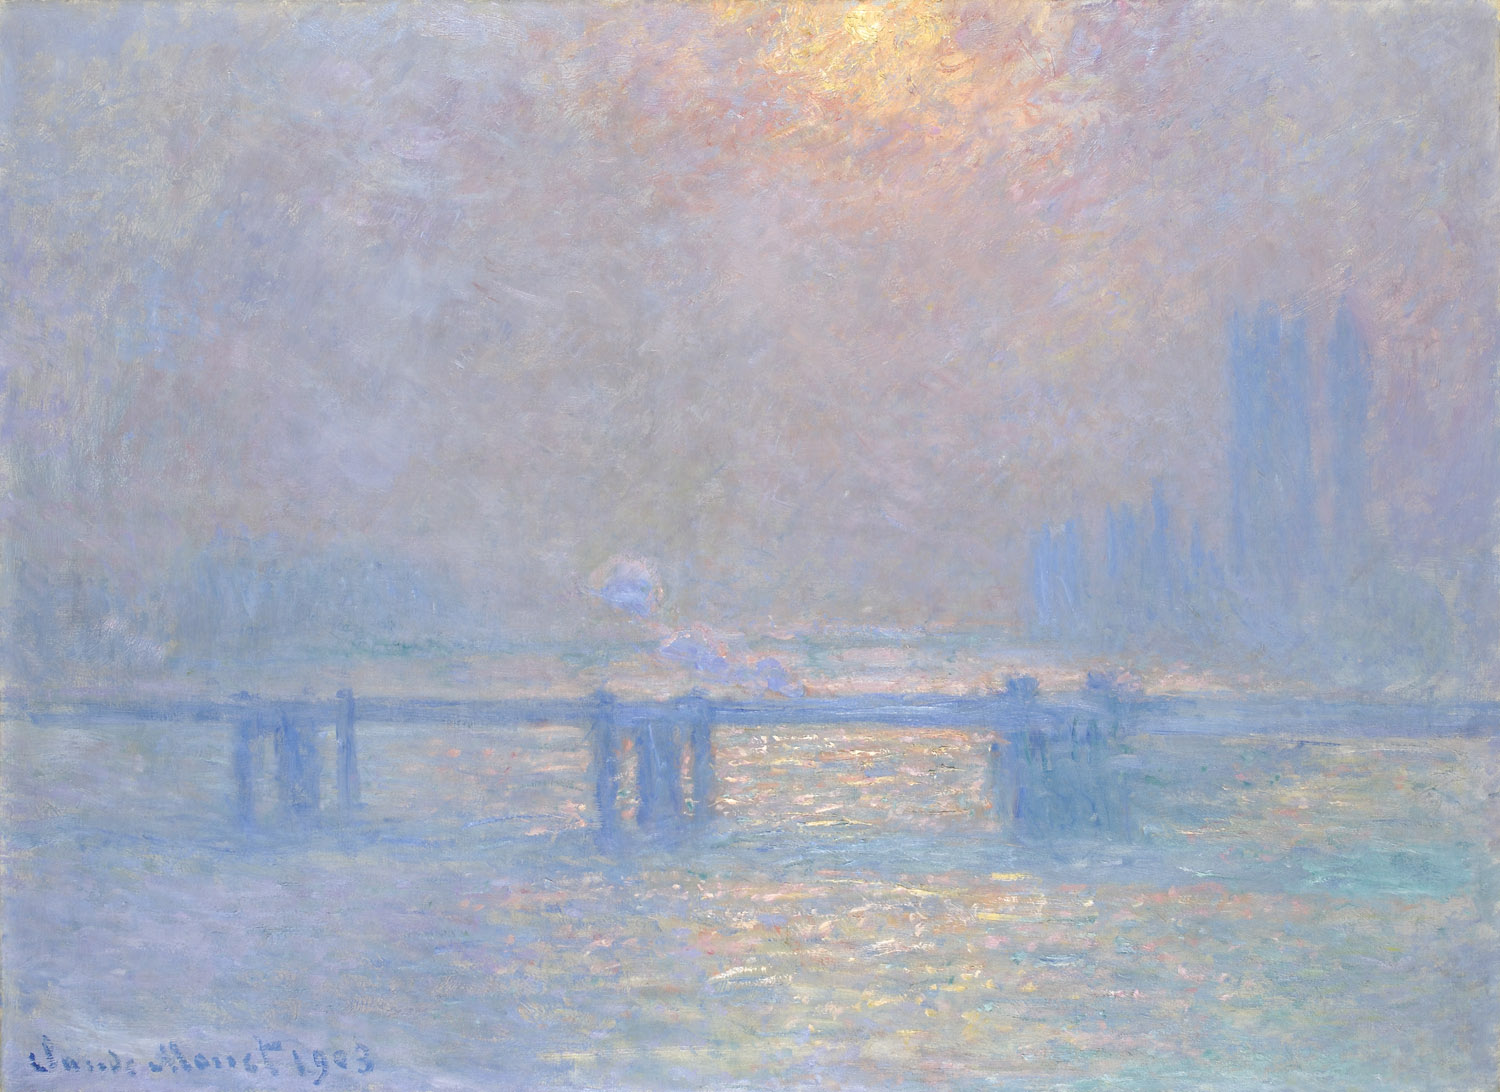 Claude Monet, Charing Cross Bridge - 1903